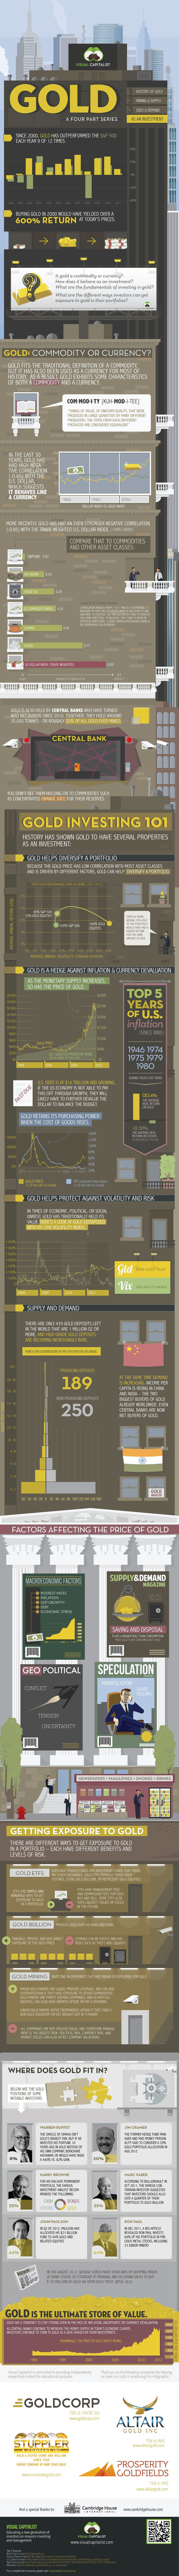 Great infographic tells you everything you need to know about investing in gold - Gold Infographic:  Gold as an Investment